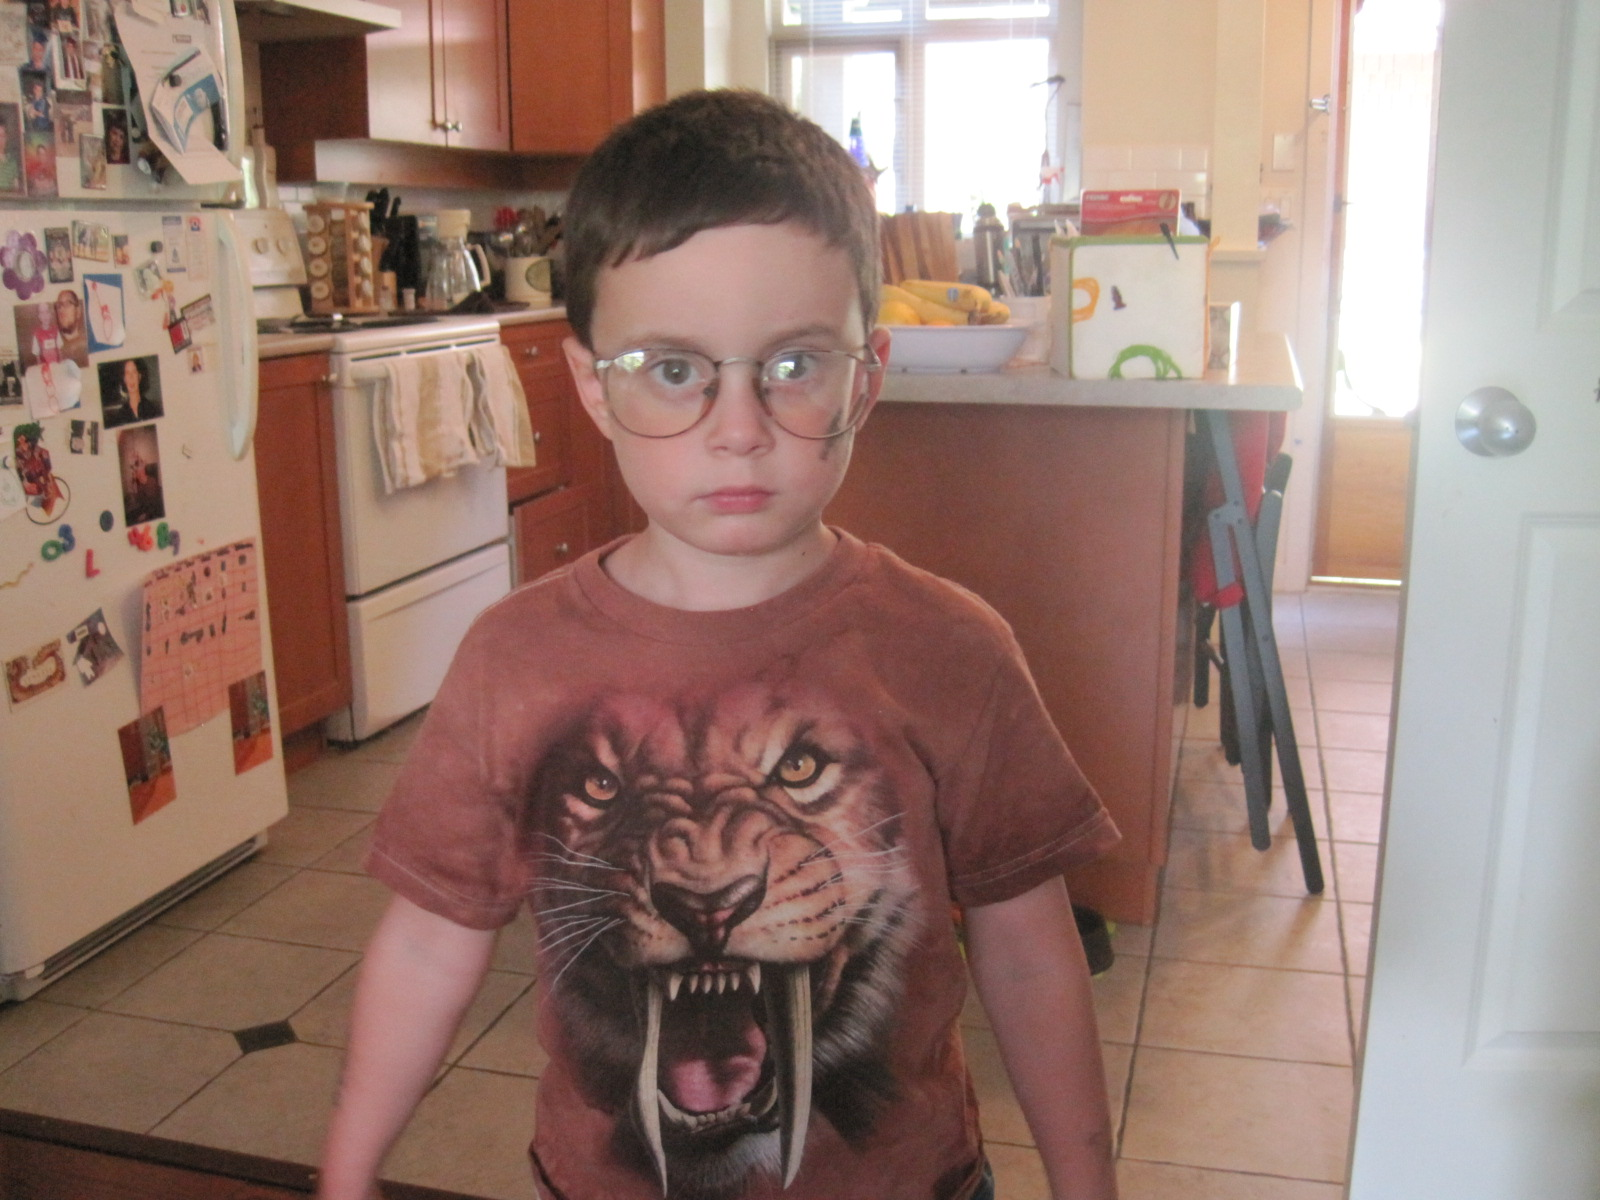 In SA's old glasses, your five year old can look like a hipster/old man!